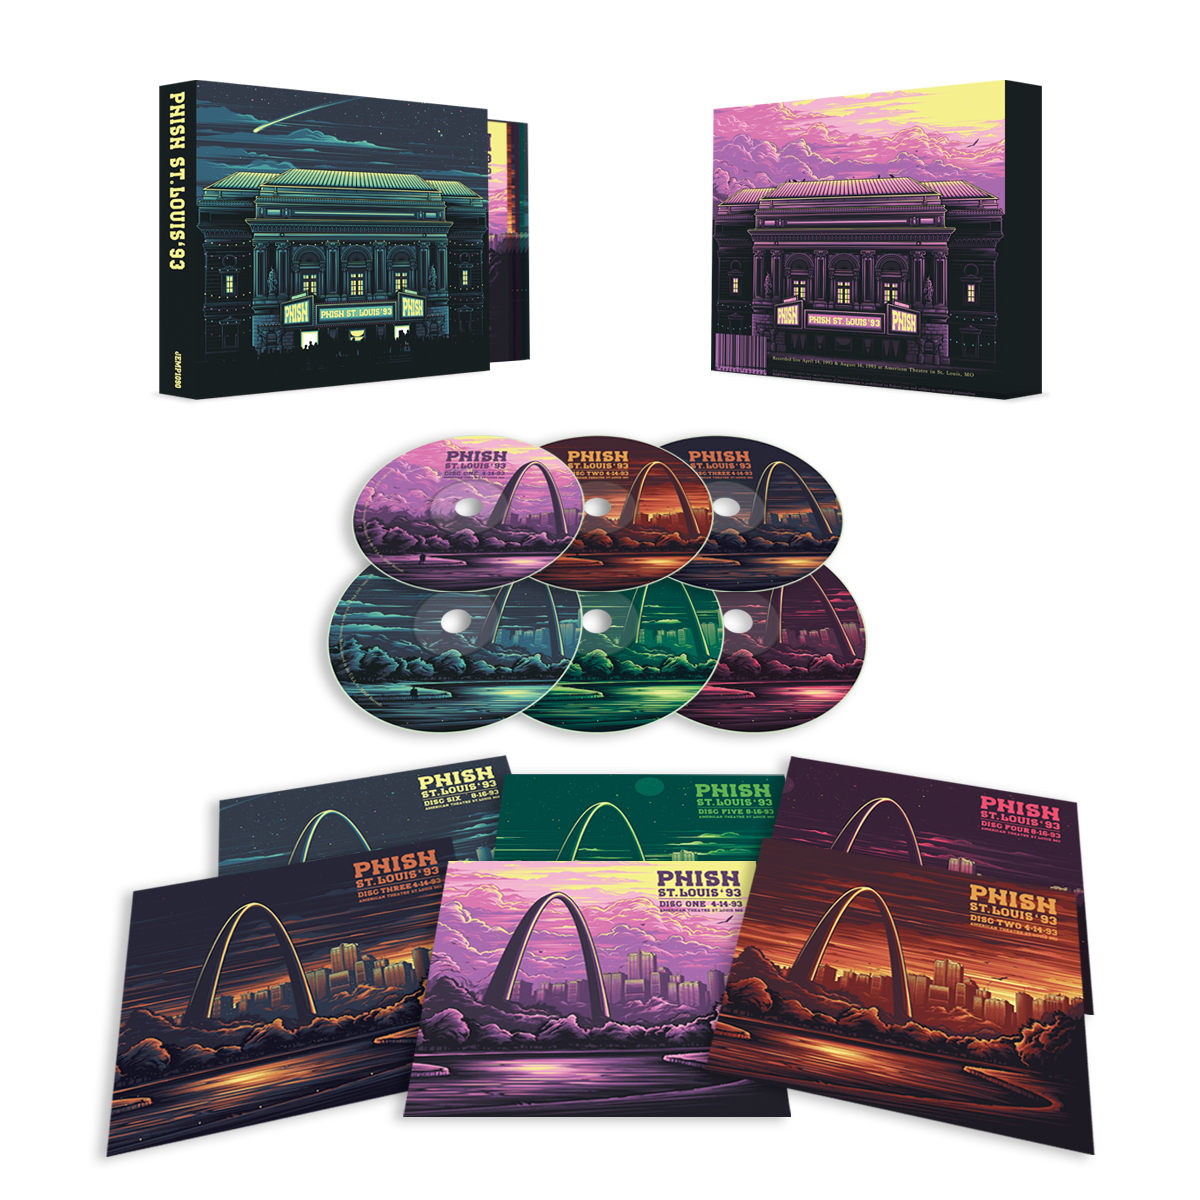 Phish St. Louis '93 6-CD Box Set